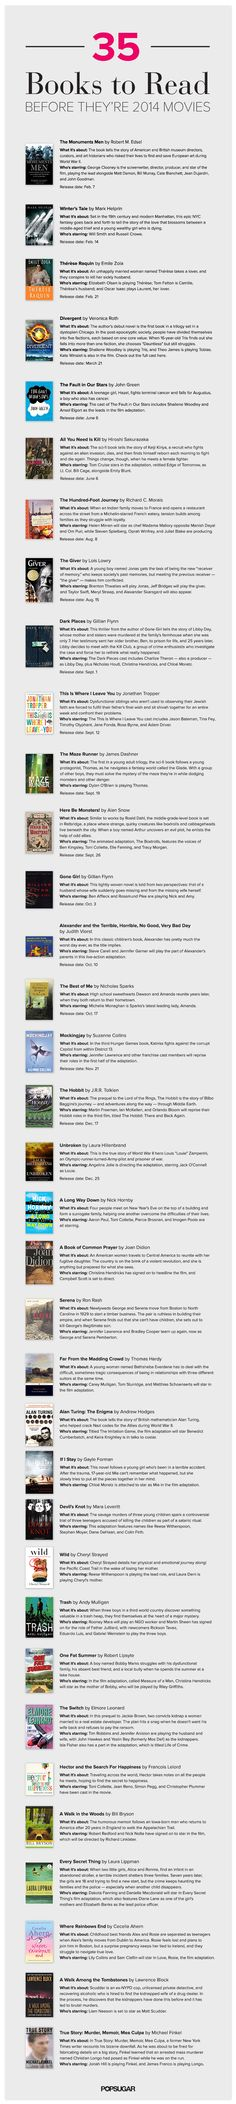 35 books to read before they're 2014 movies! I'm really nervous that some of these fabulous book will be made into mediocre movies. Can't some books just stay books?!